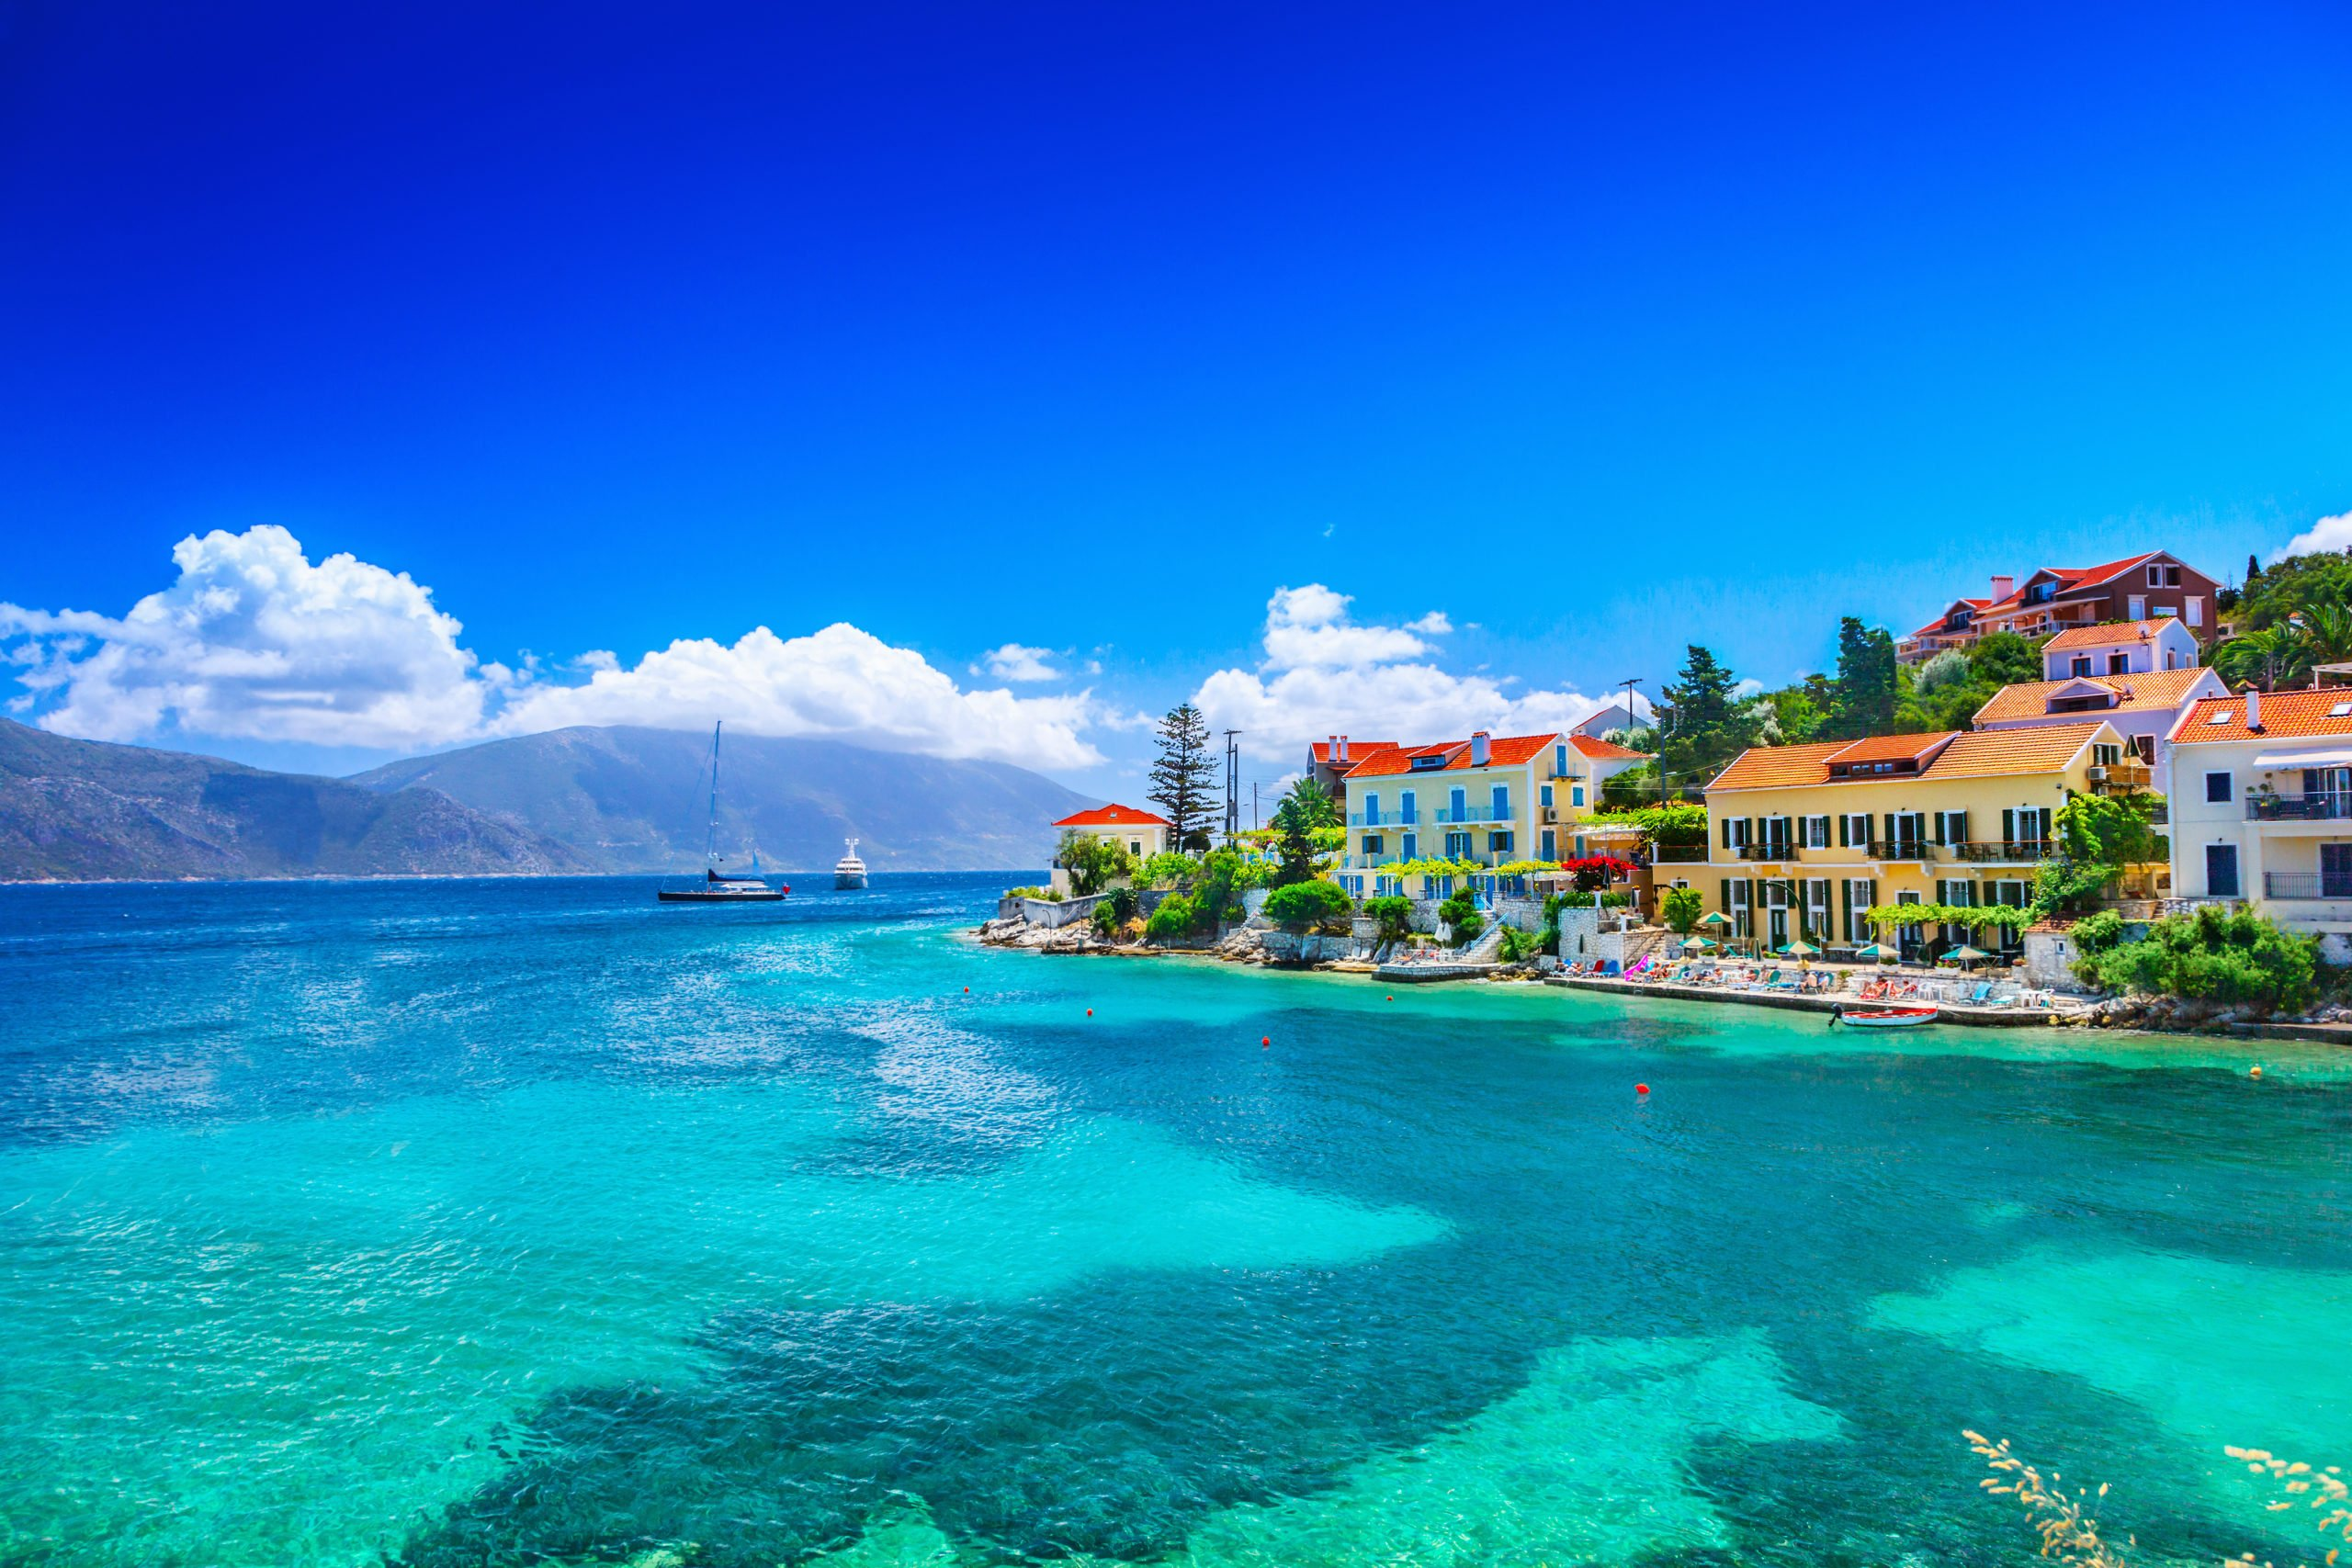 Swim In The Crystal Clear Waters Of The Ionian Sea On The Kefalonia Coastline Cruise Including Fiscardo & Melissani Lake